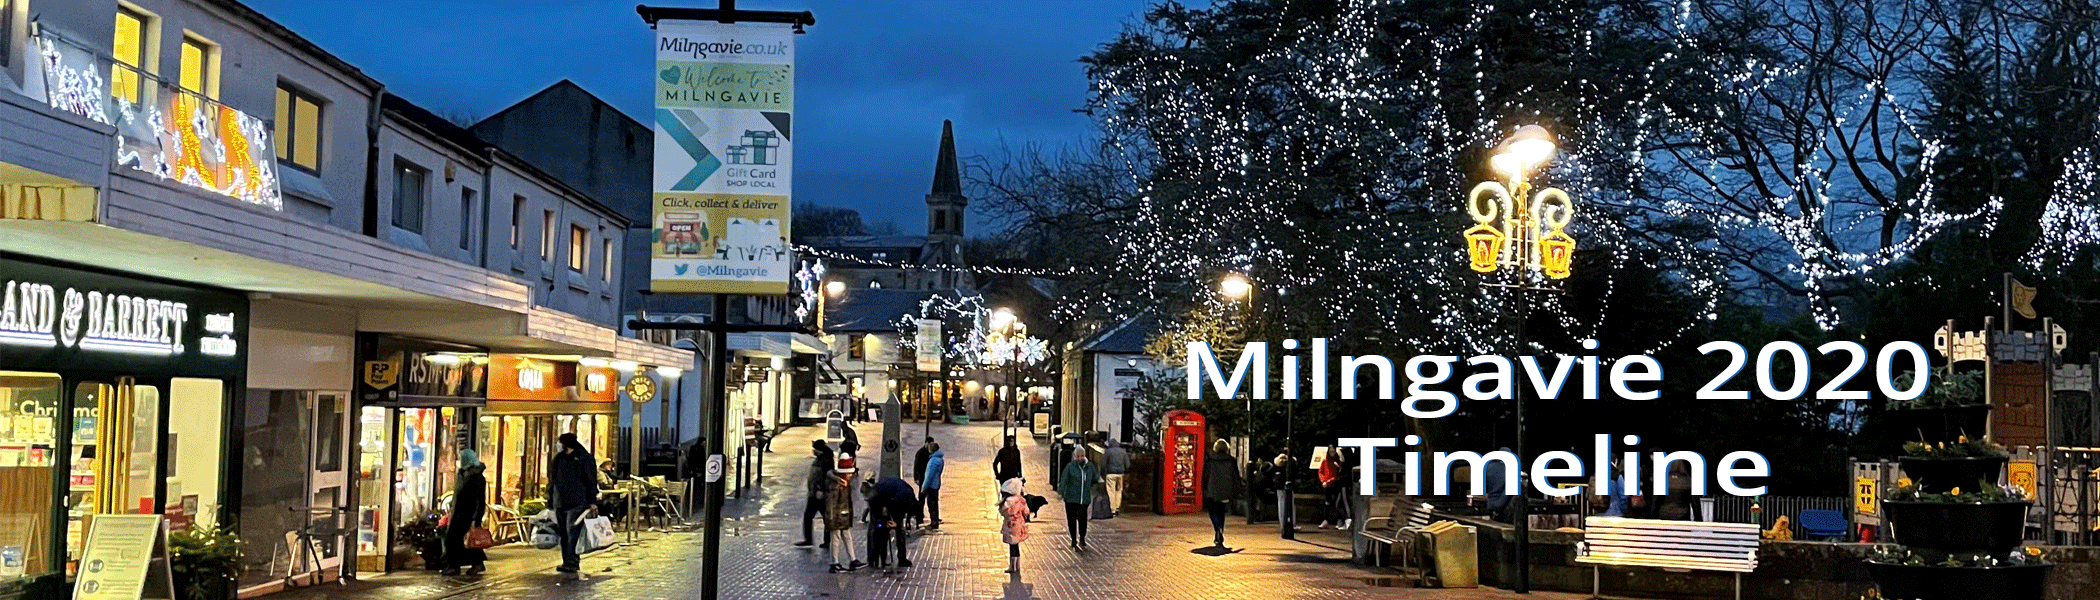 Milngavie 2020 Timeline